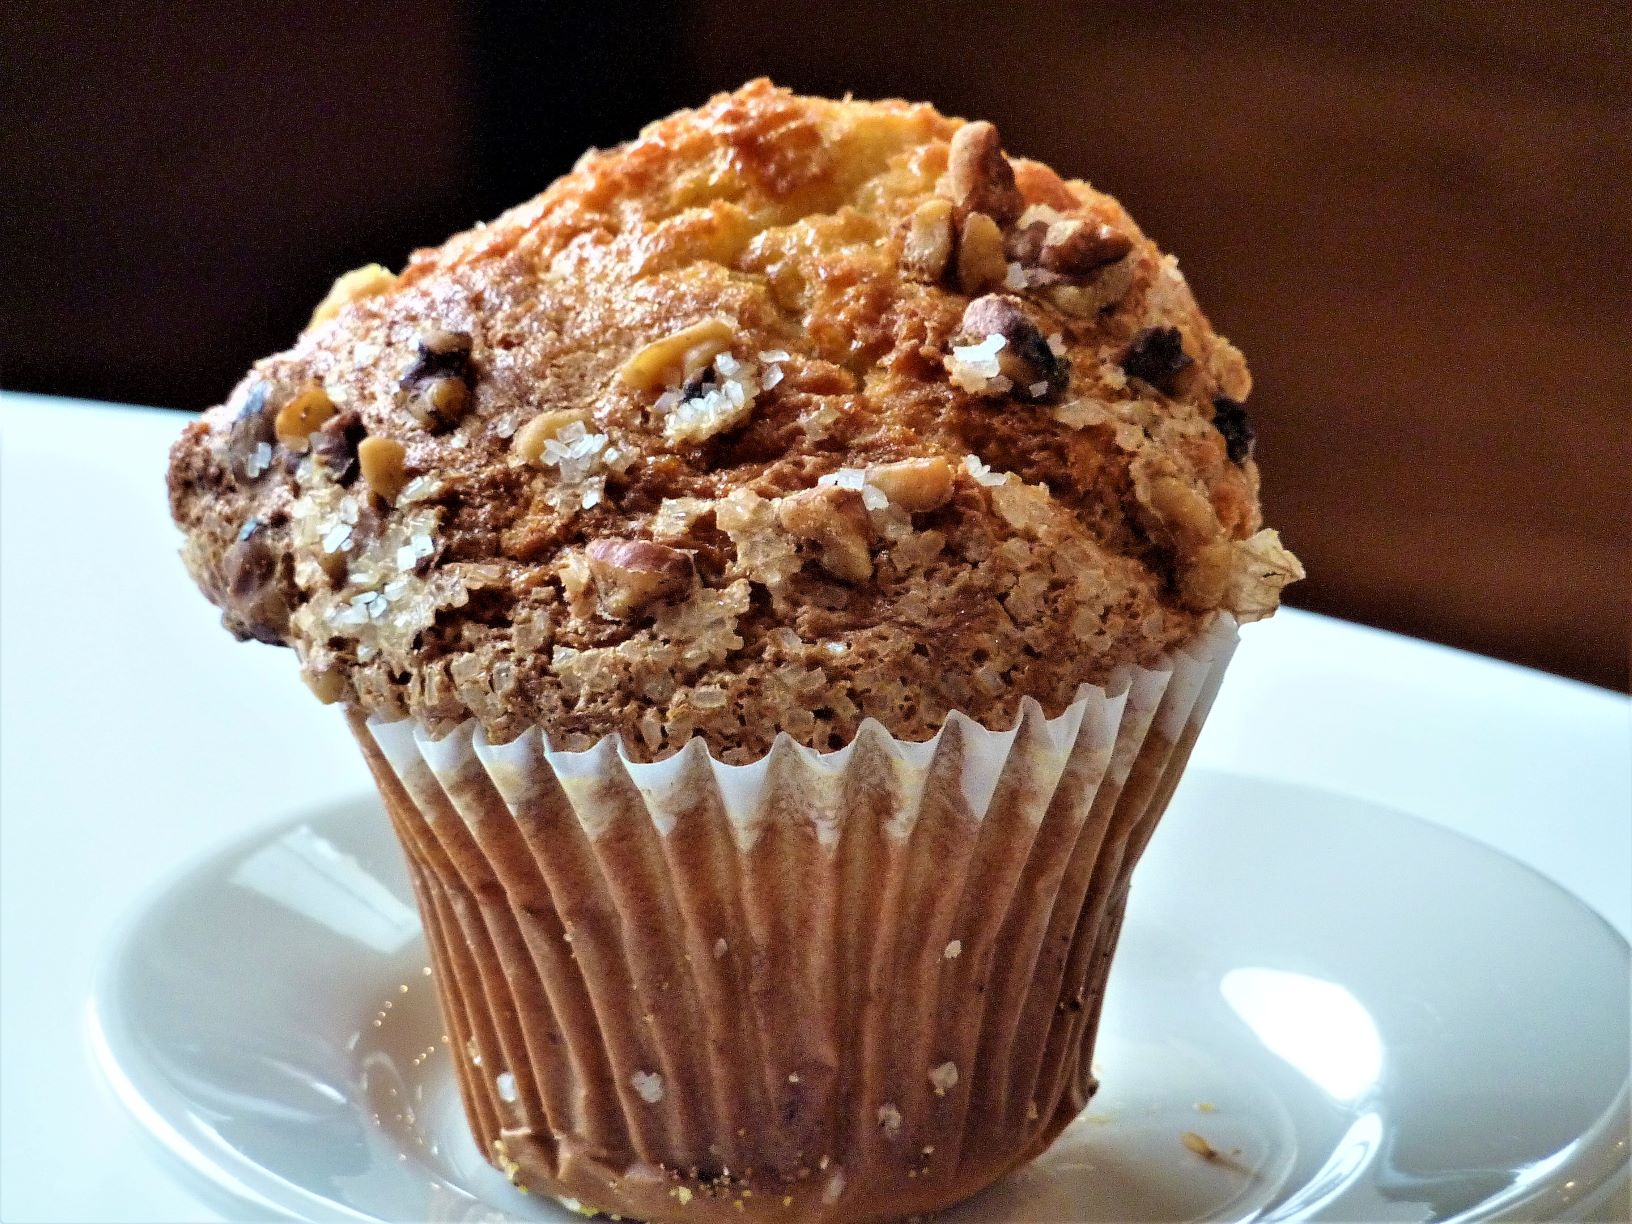 Banana nut muffin from Millis Clicquot Coffee in Millis, , Mass.